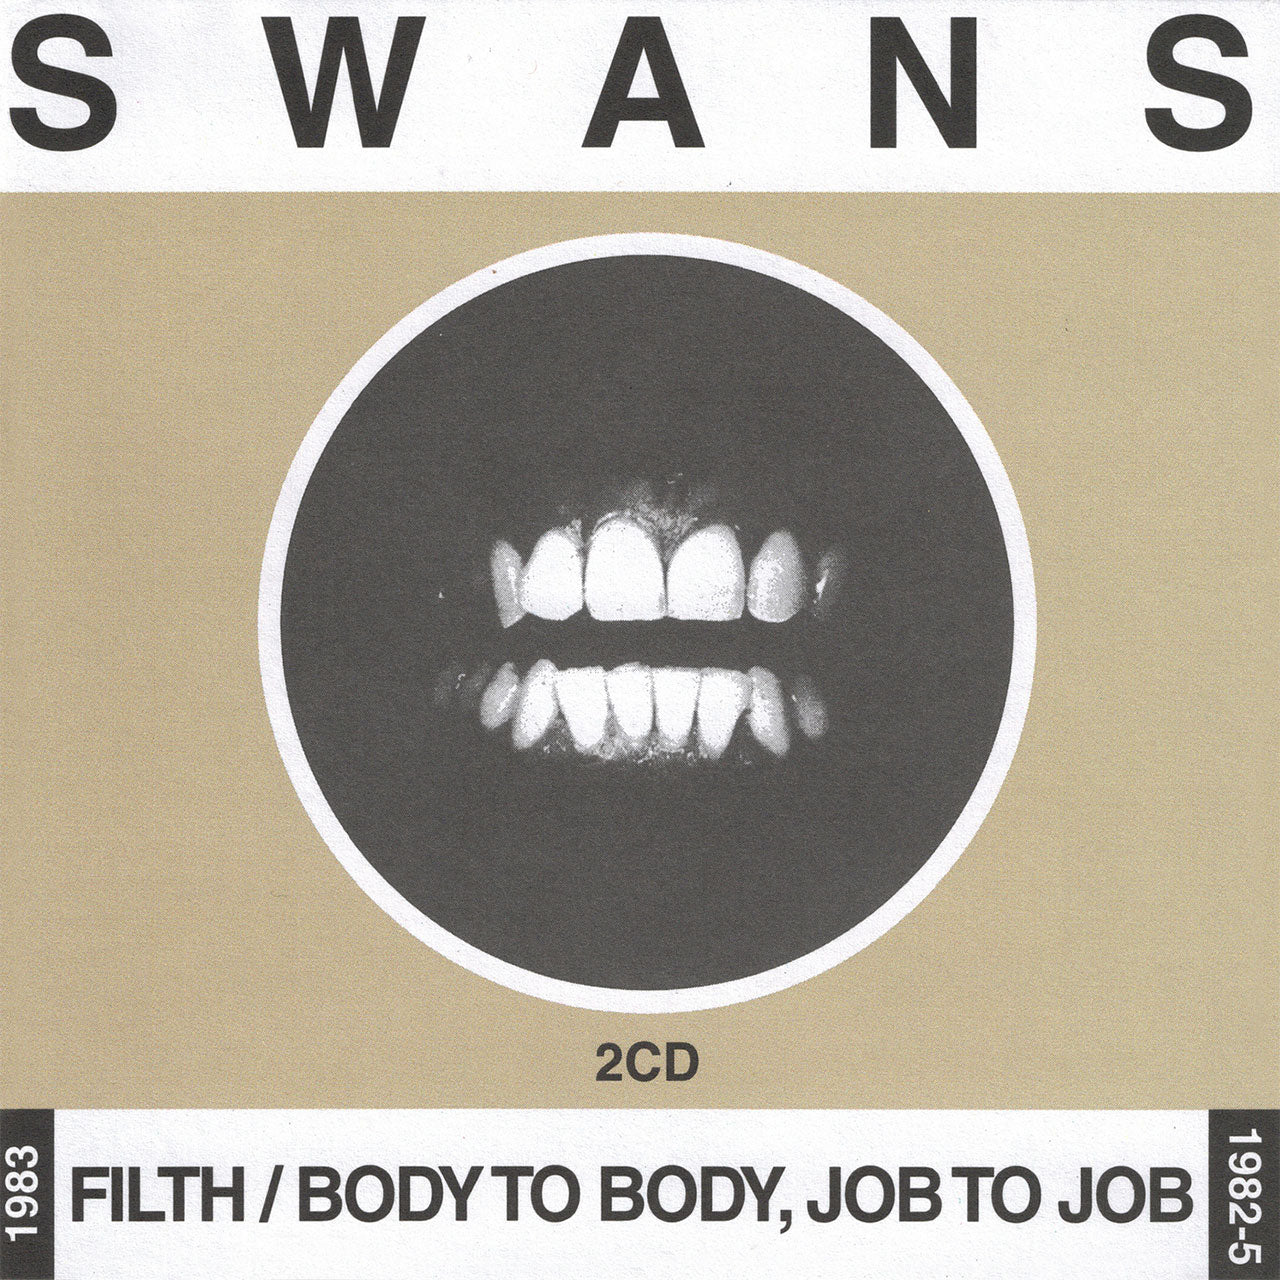 Swans - Filth / Body to Body, Job to Job (2CD)